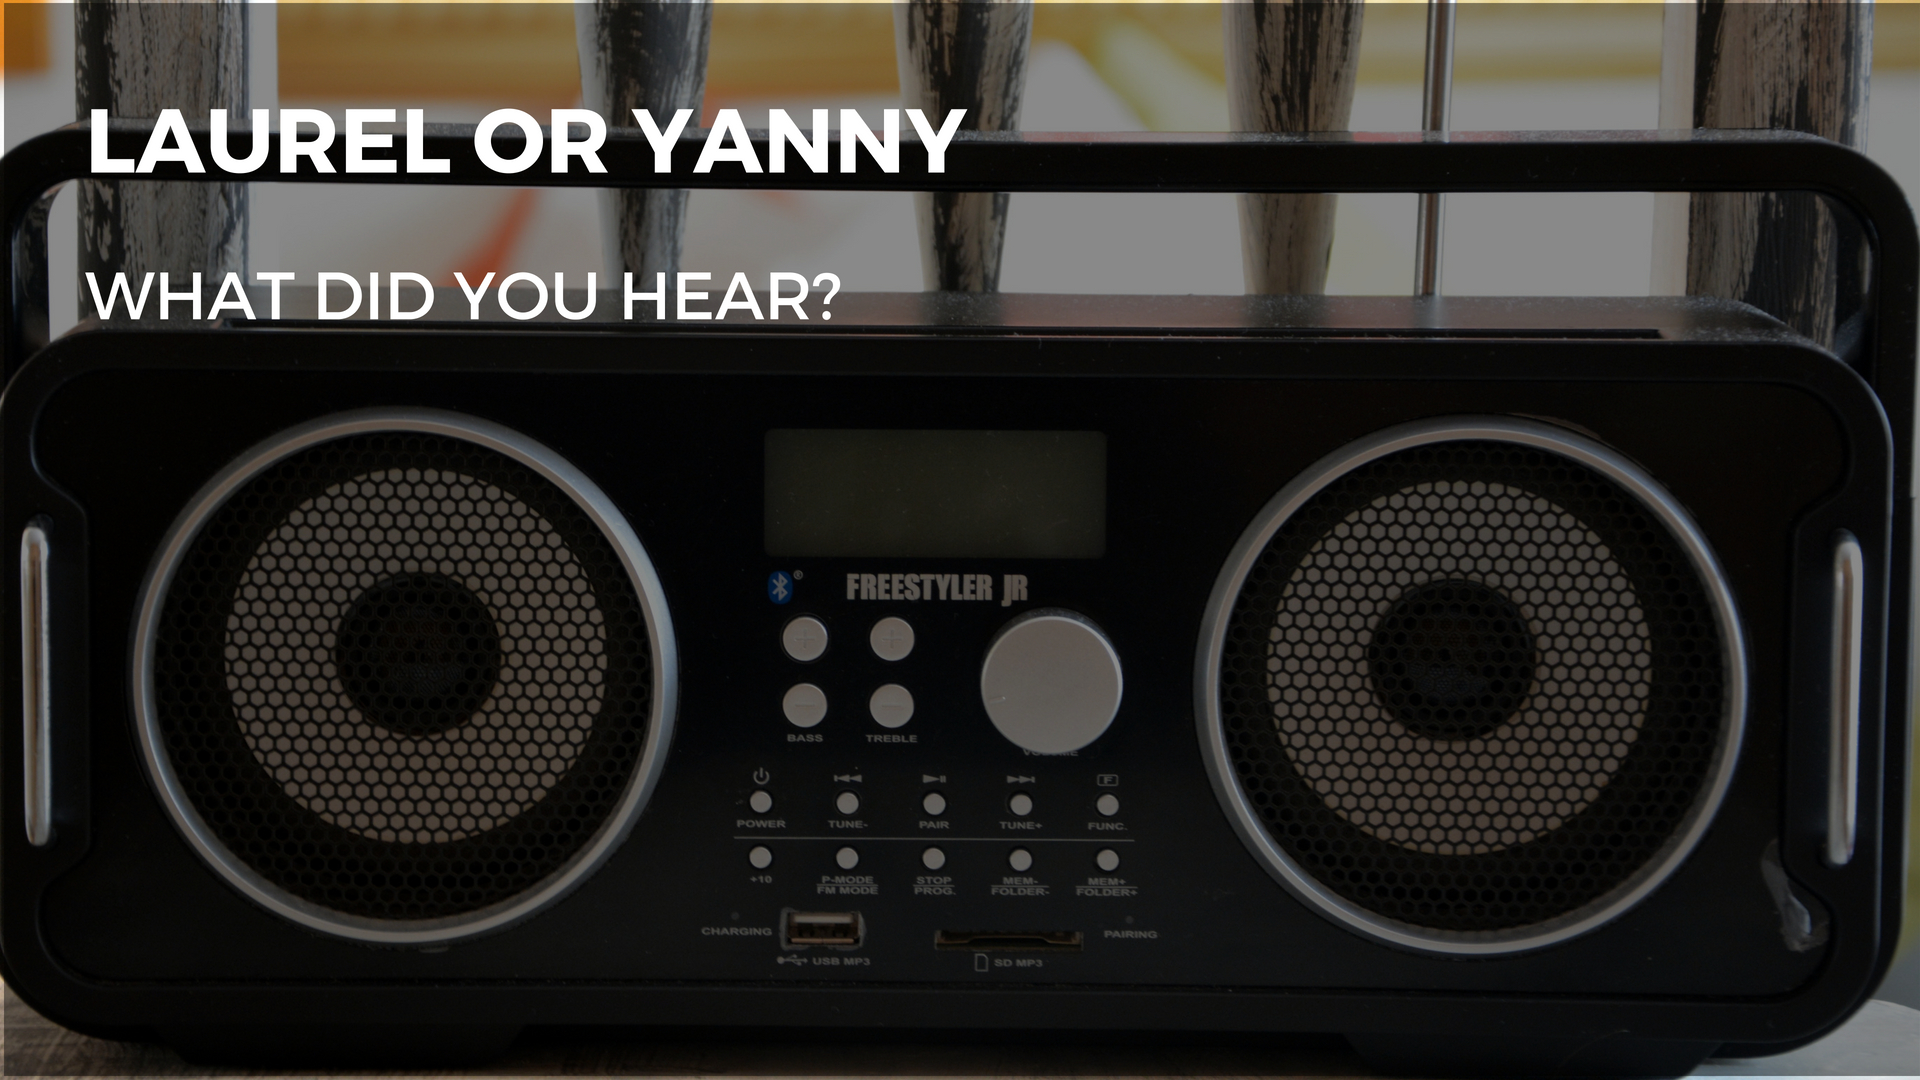 What did you hear? Yanny or Laurel